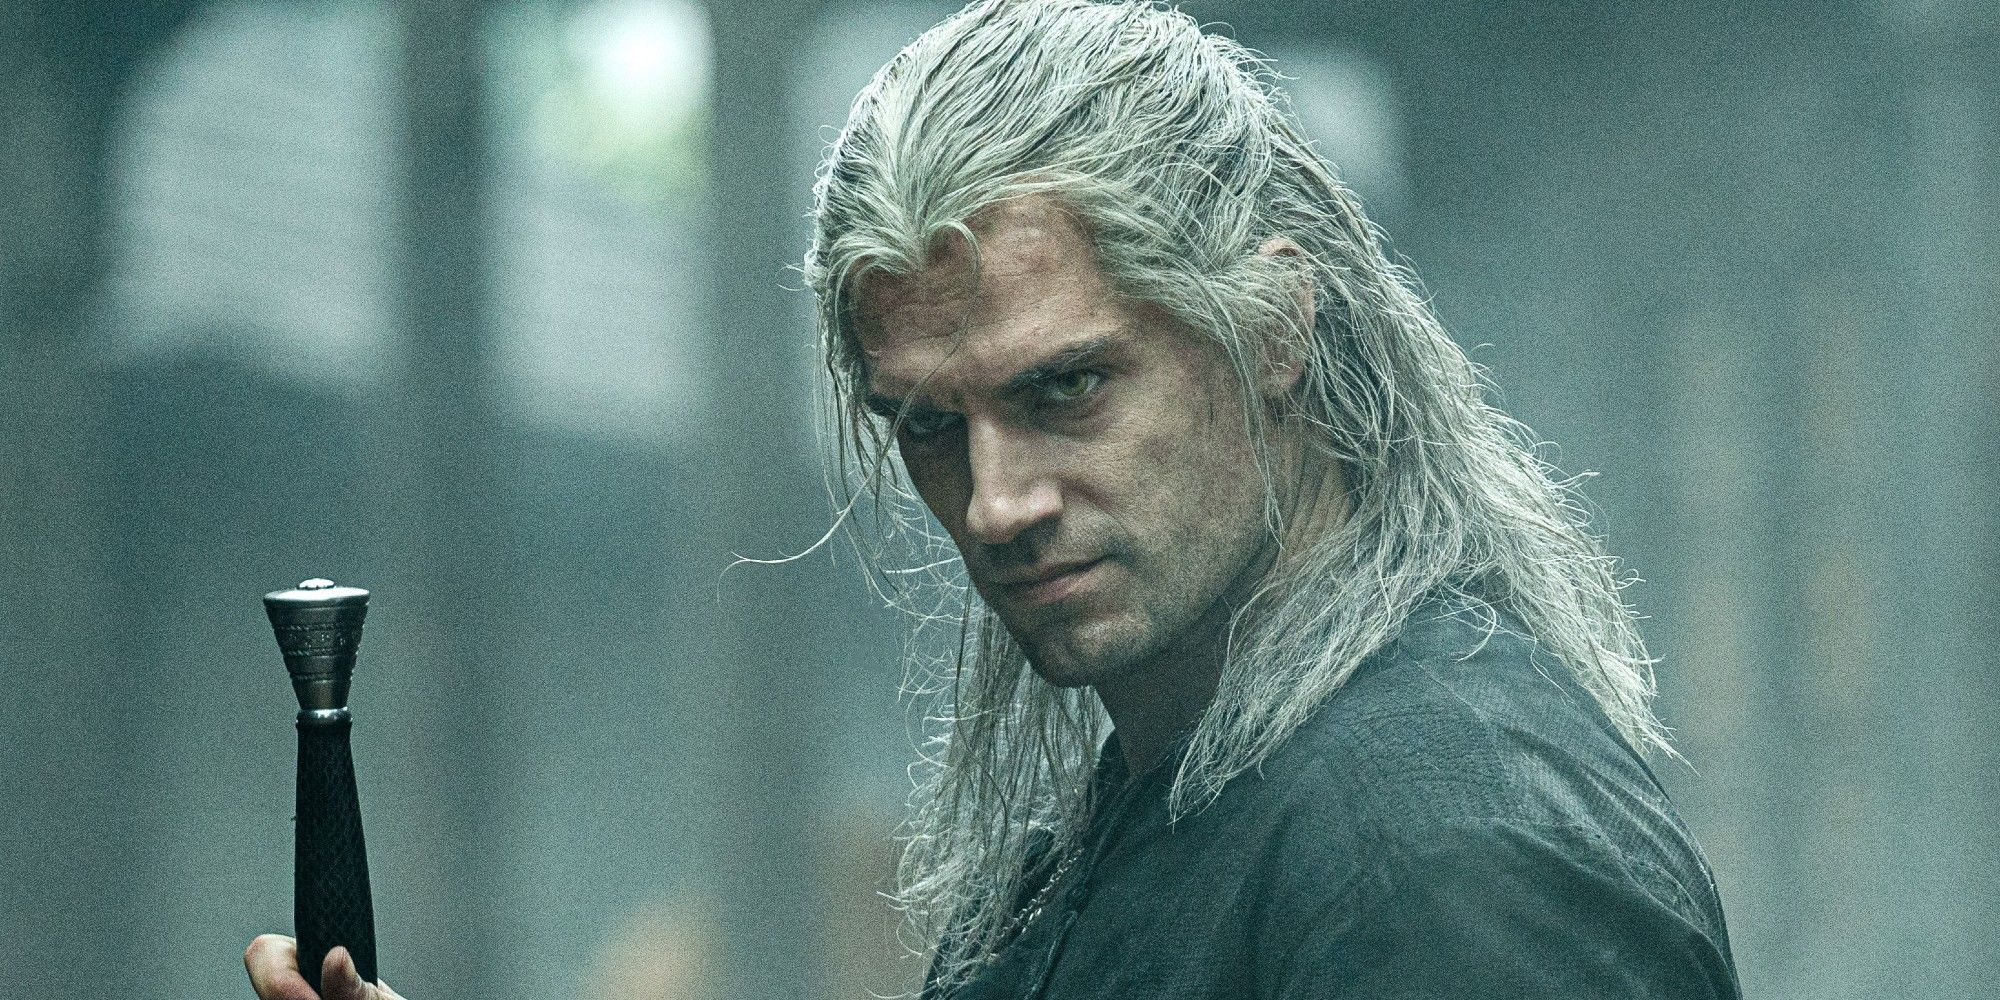 The Witcher's Henry Cavill Asks Fans Not to Troll His Relationship